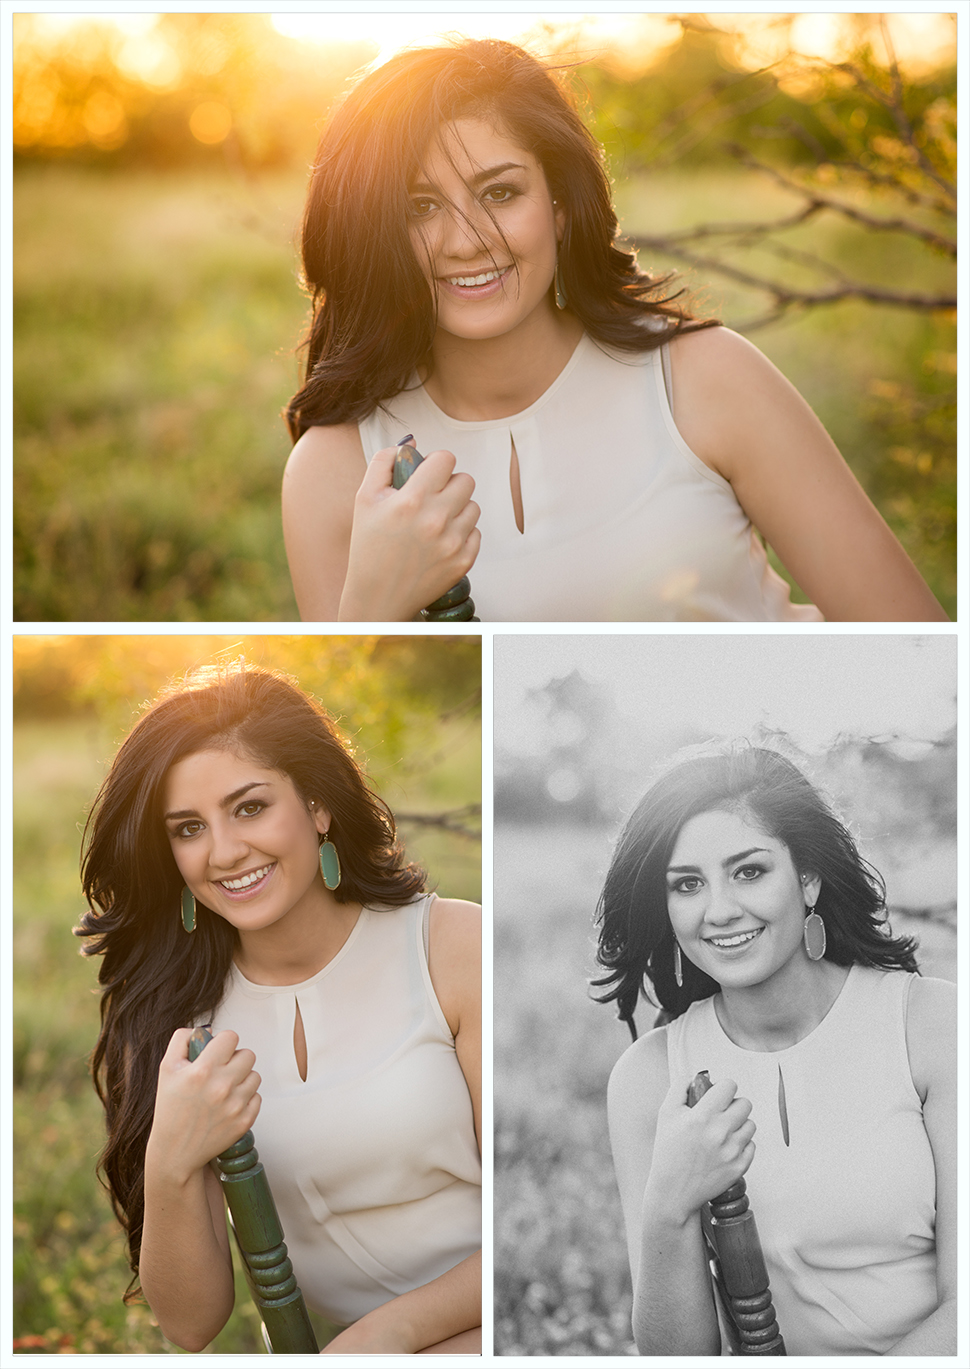 fort scott senior dating site Personal ads for fort scott, ks are a great way to find a life partner, movie date, or a quick hookup personals are for people local to fort scott, ks and are for ages 18+ of.